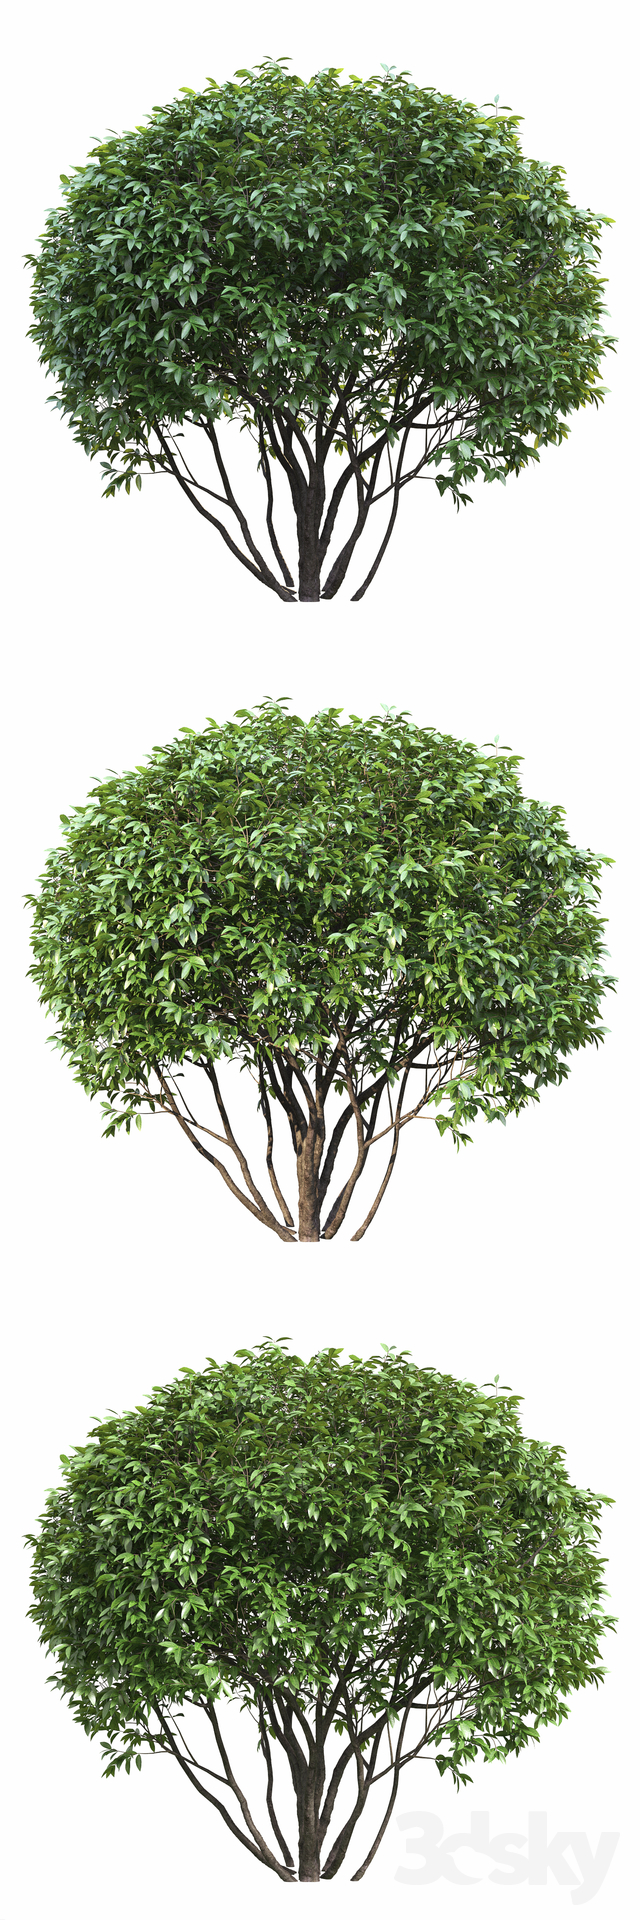 Ligustrum Shining (Biryuchina)